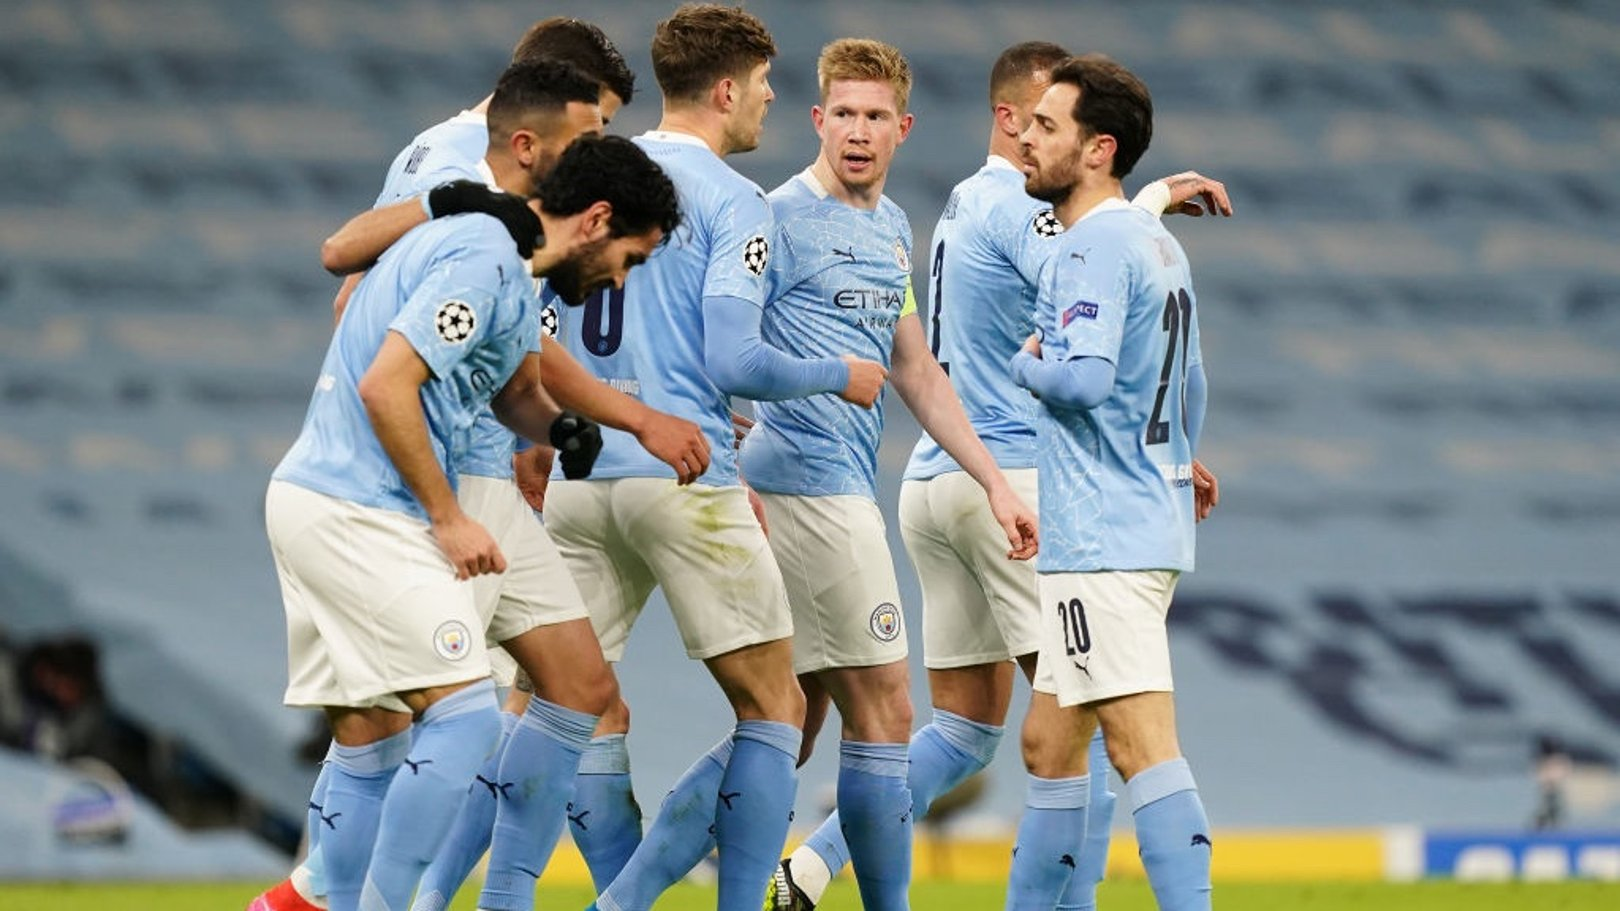 CAPTAIN FANTASTIC: The players gather to celebrate the De Bruyne's goal.